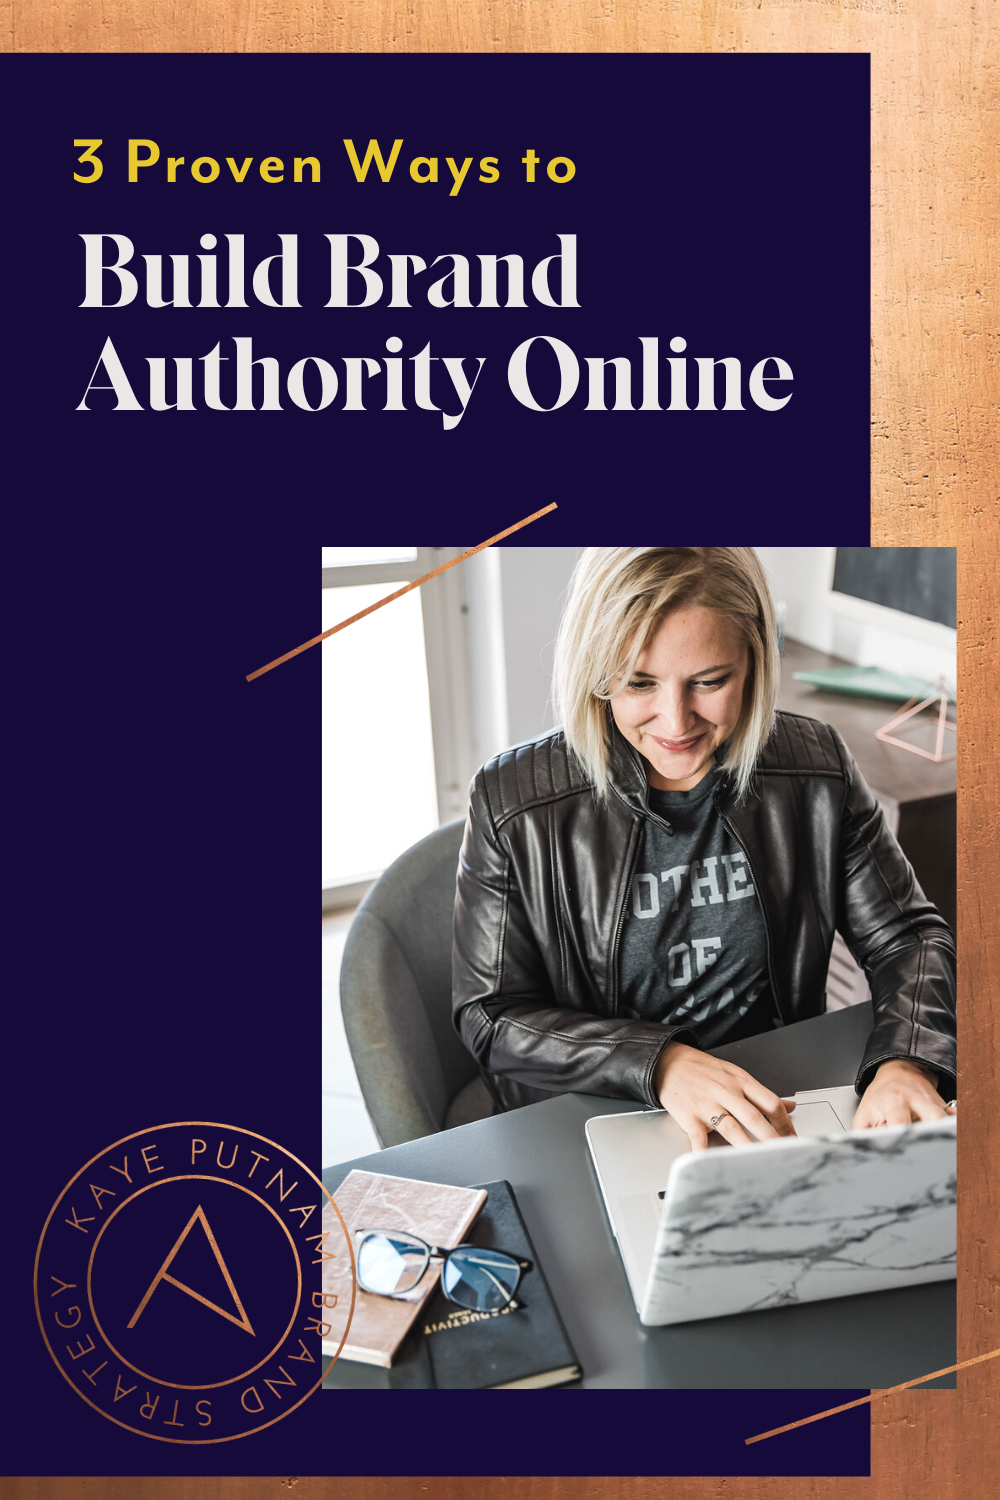 3 ways to build brand authority online - pin